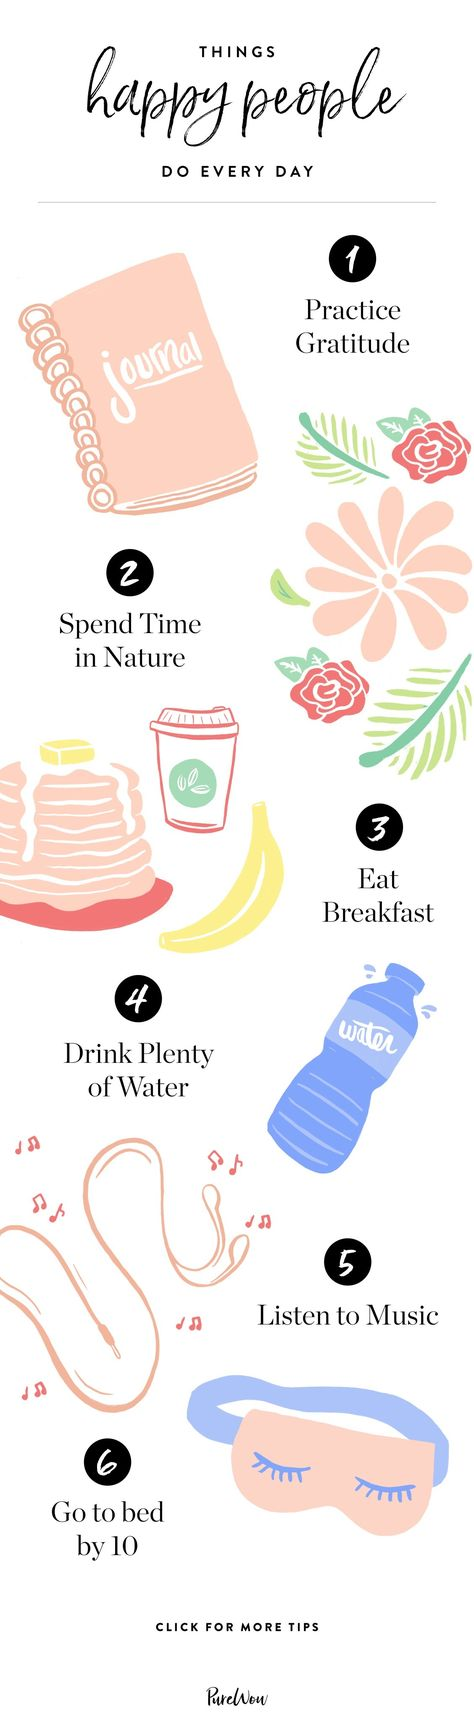 8 Things Happy People Do Every Day